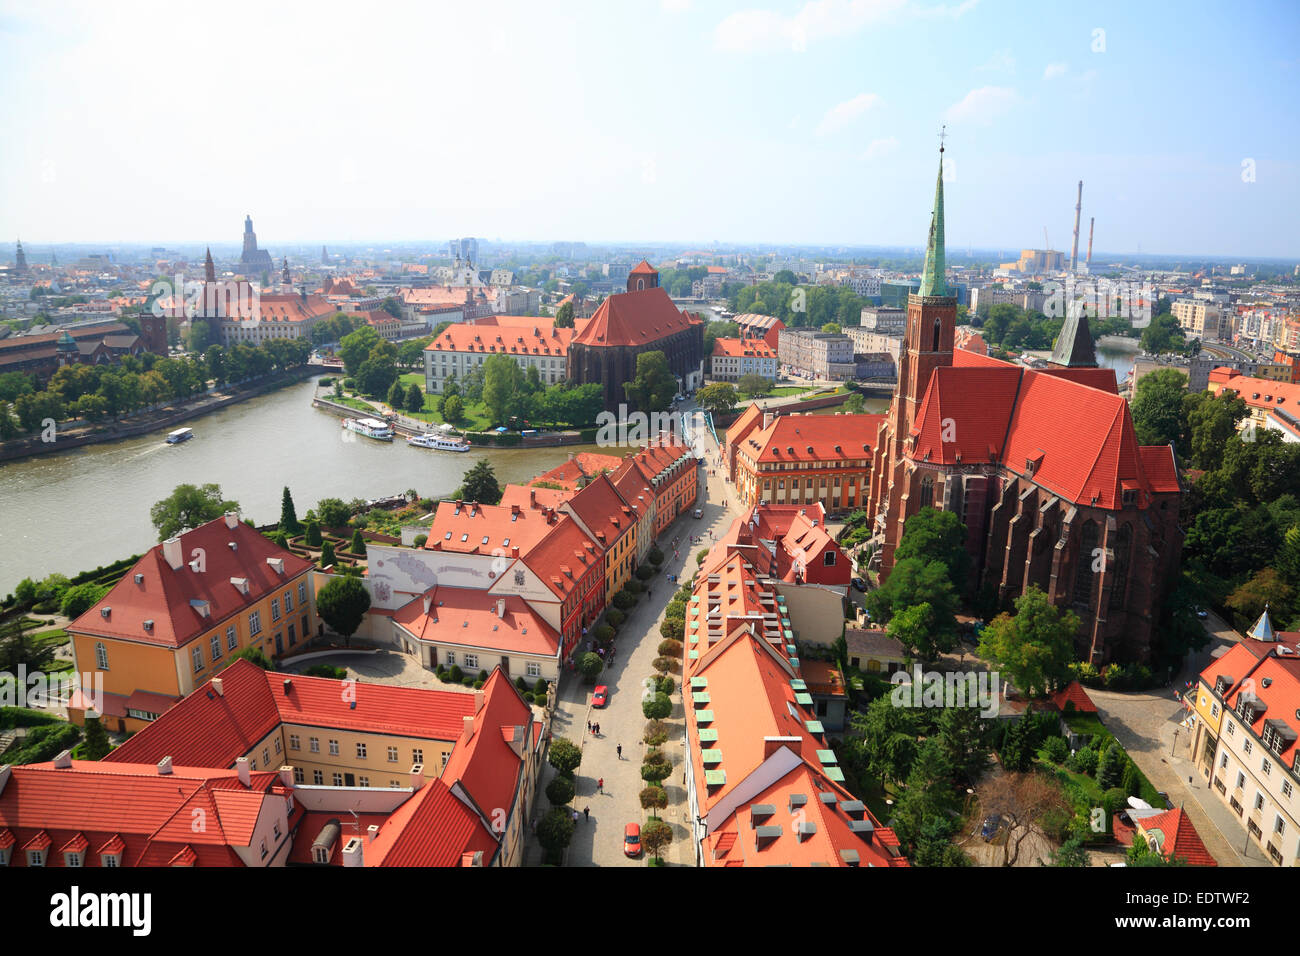 View from St. Johns cathedral tower across Cathedral Island, Wroclaw, Lower Silesia, Poland, Europe - Stock Image